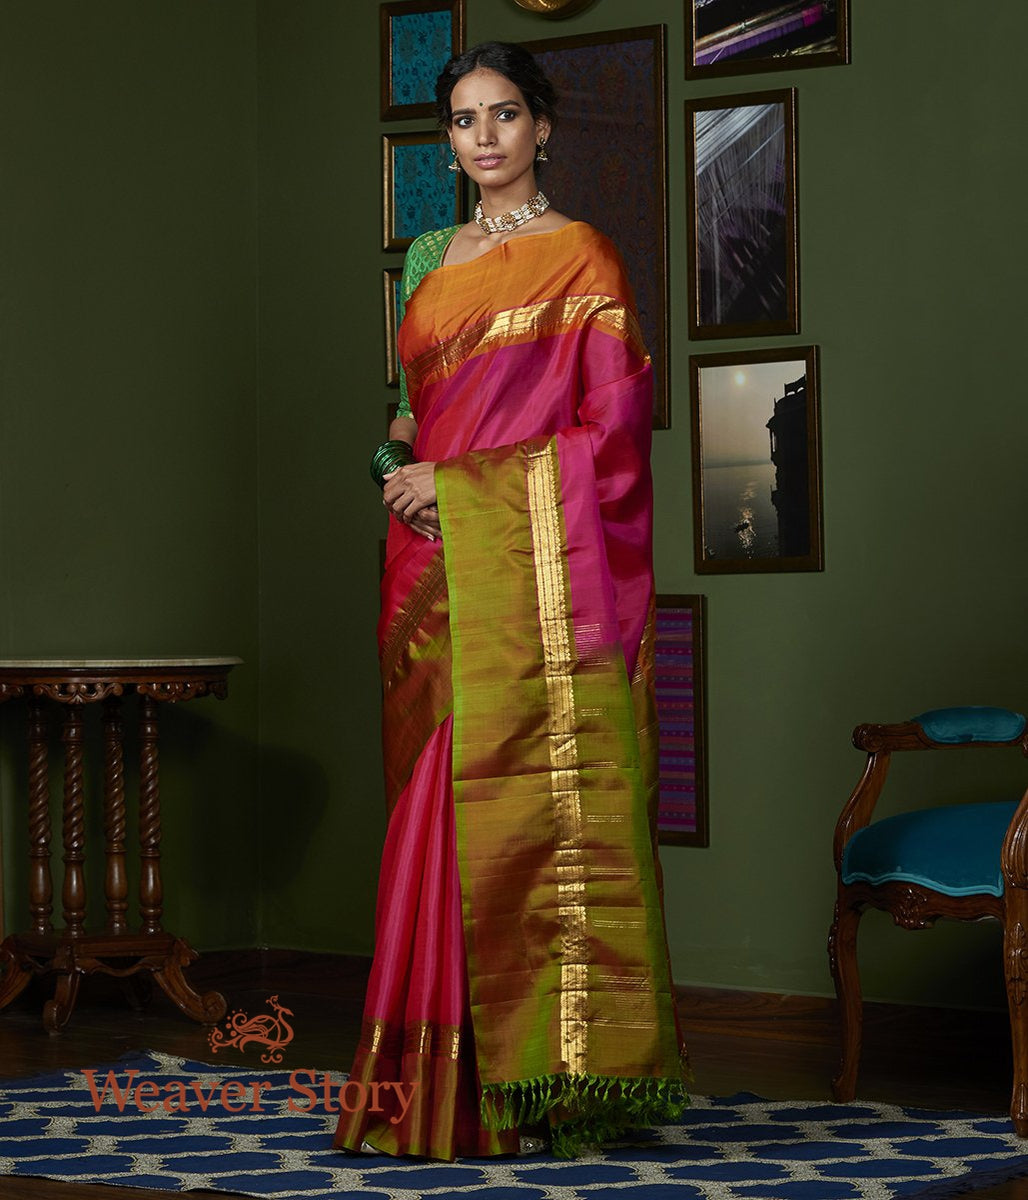 Handwoven Pink Kanjivaram Silk Saree with Green and Orange Broad Borders